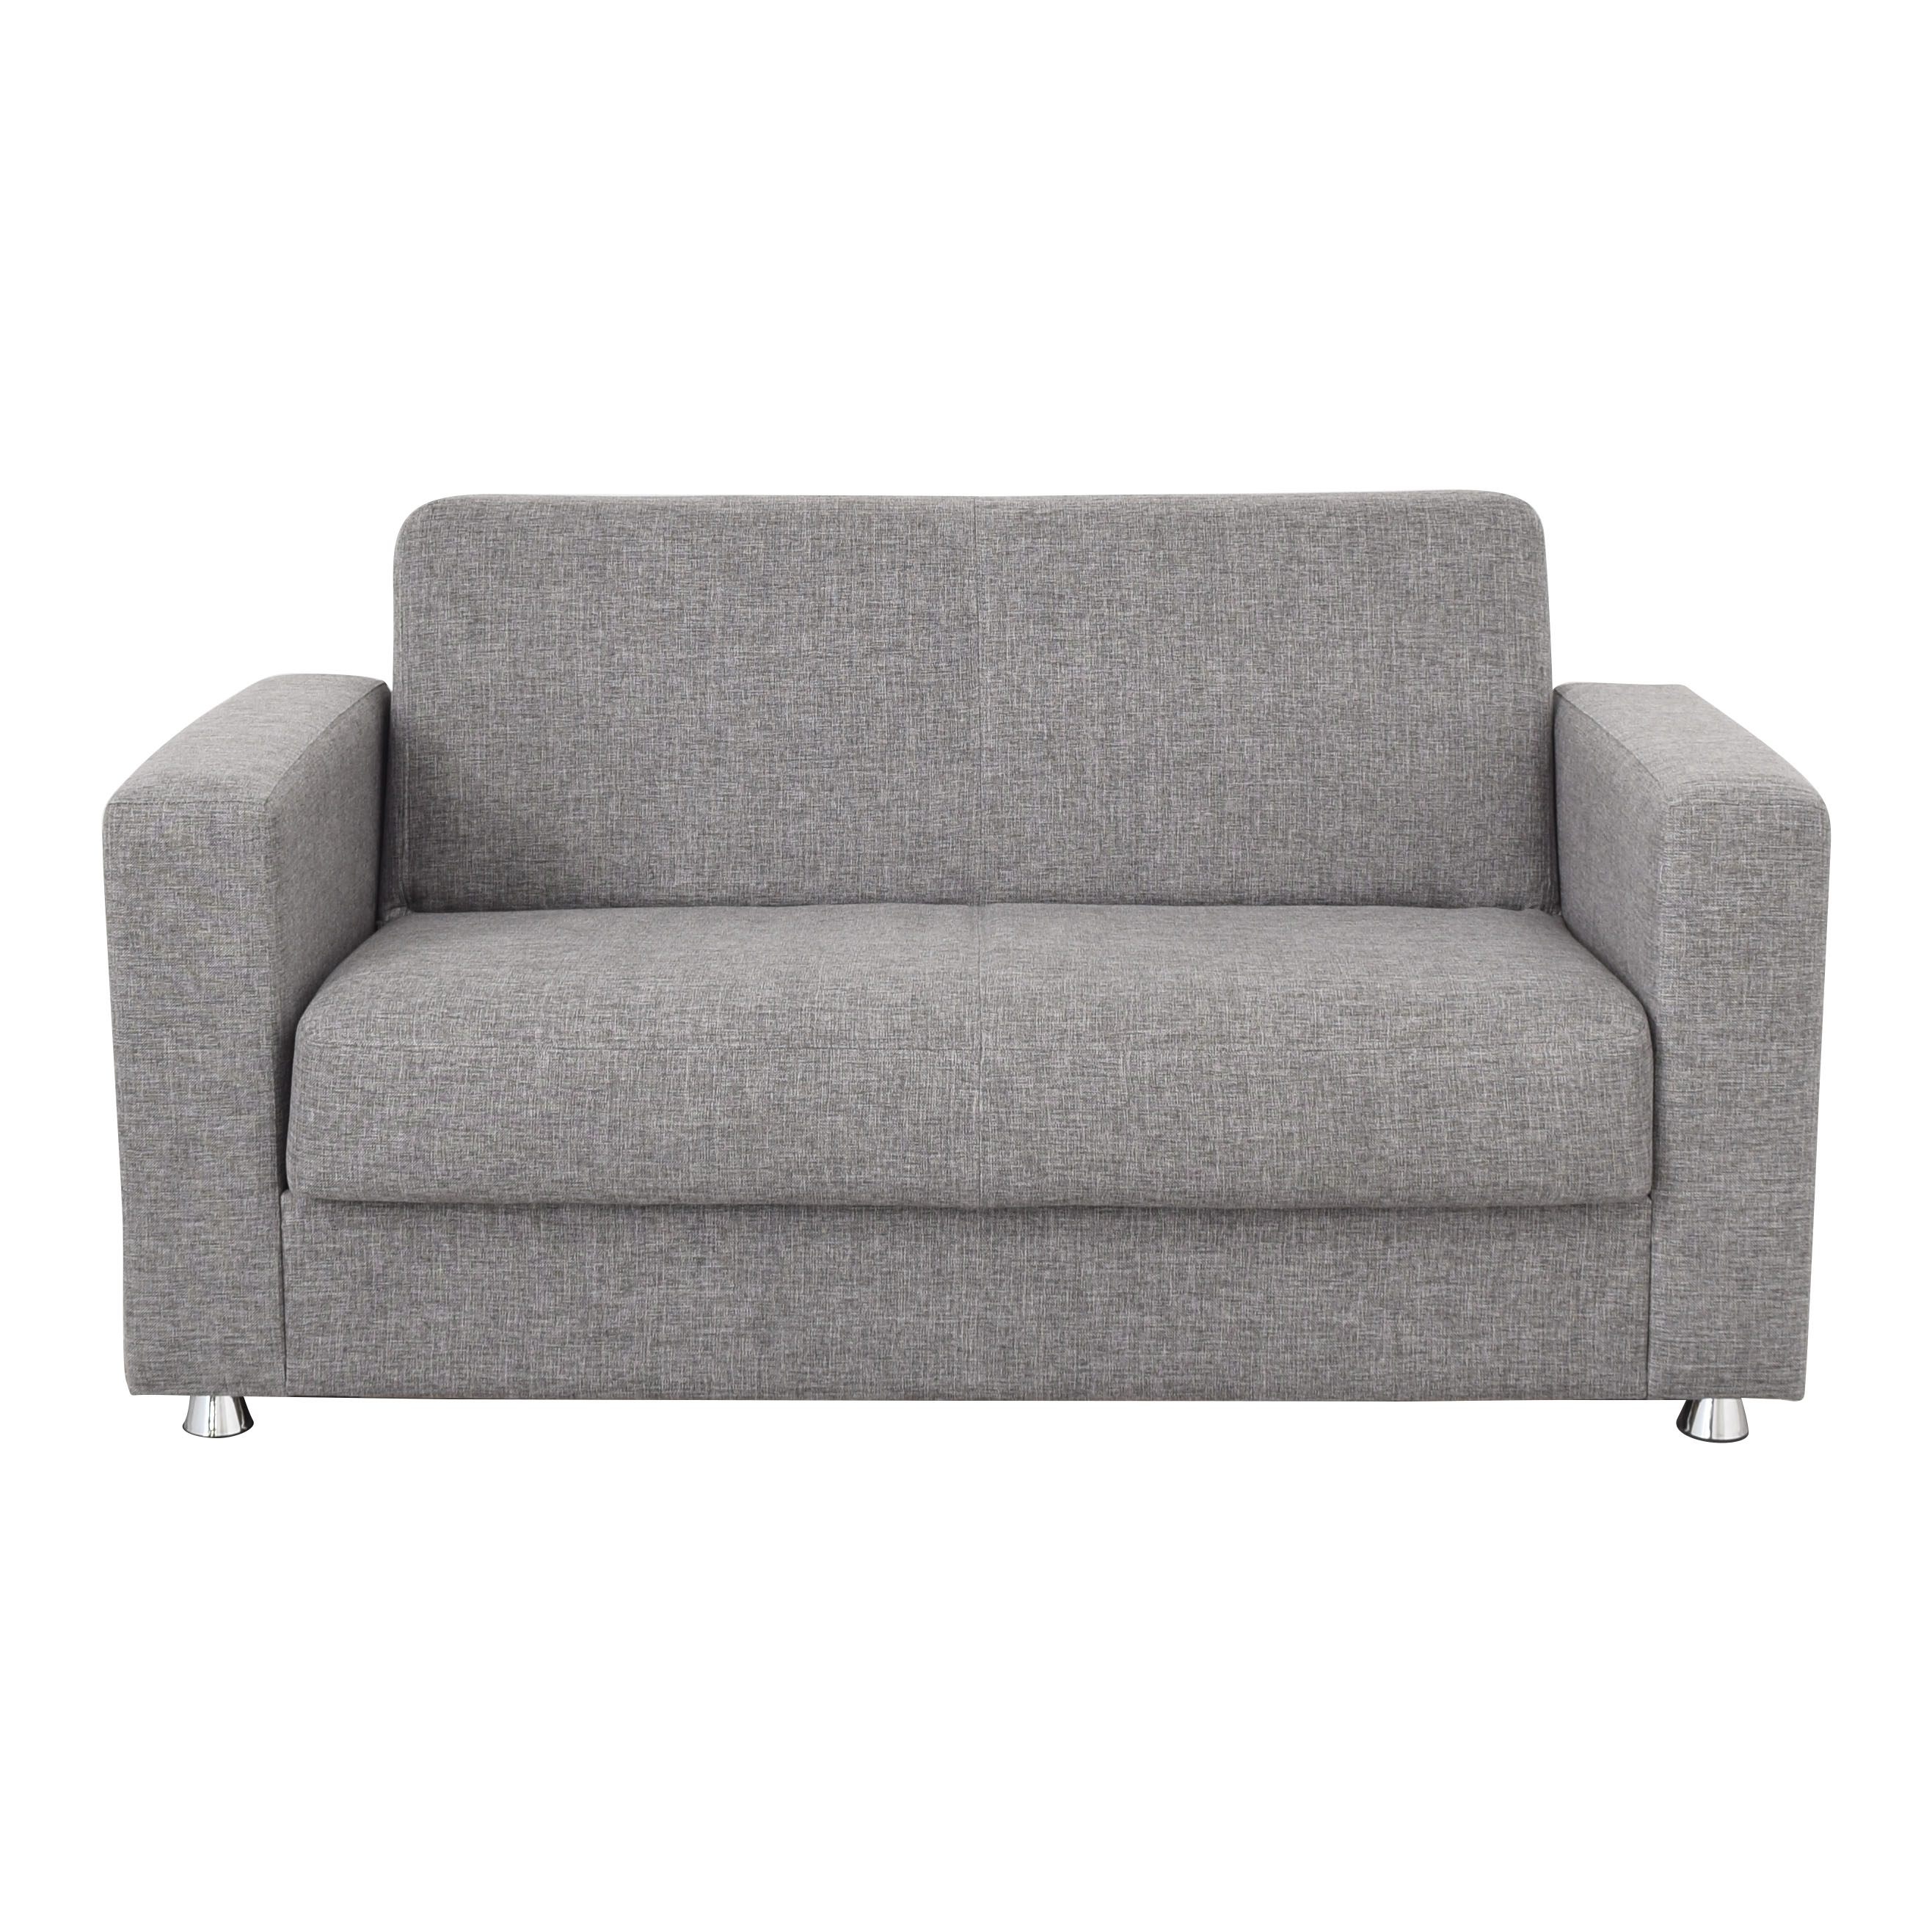 Istikbal Istikbal Tokyo Loveseat and Ottoman discount